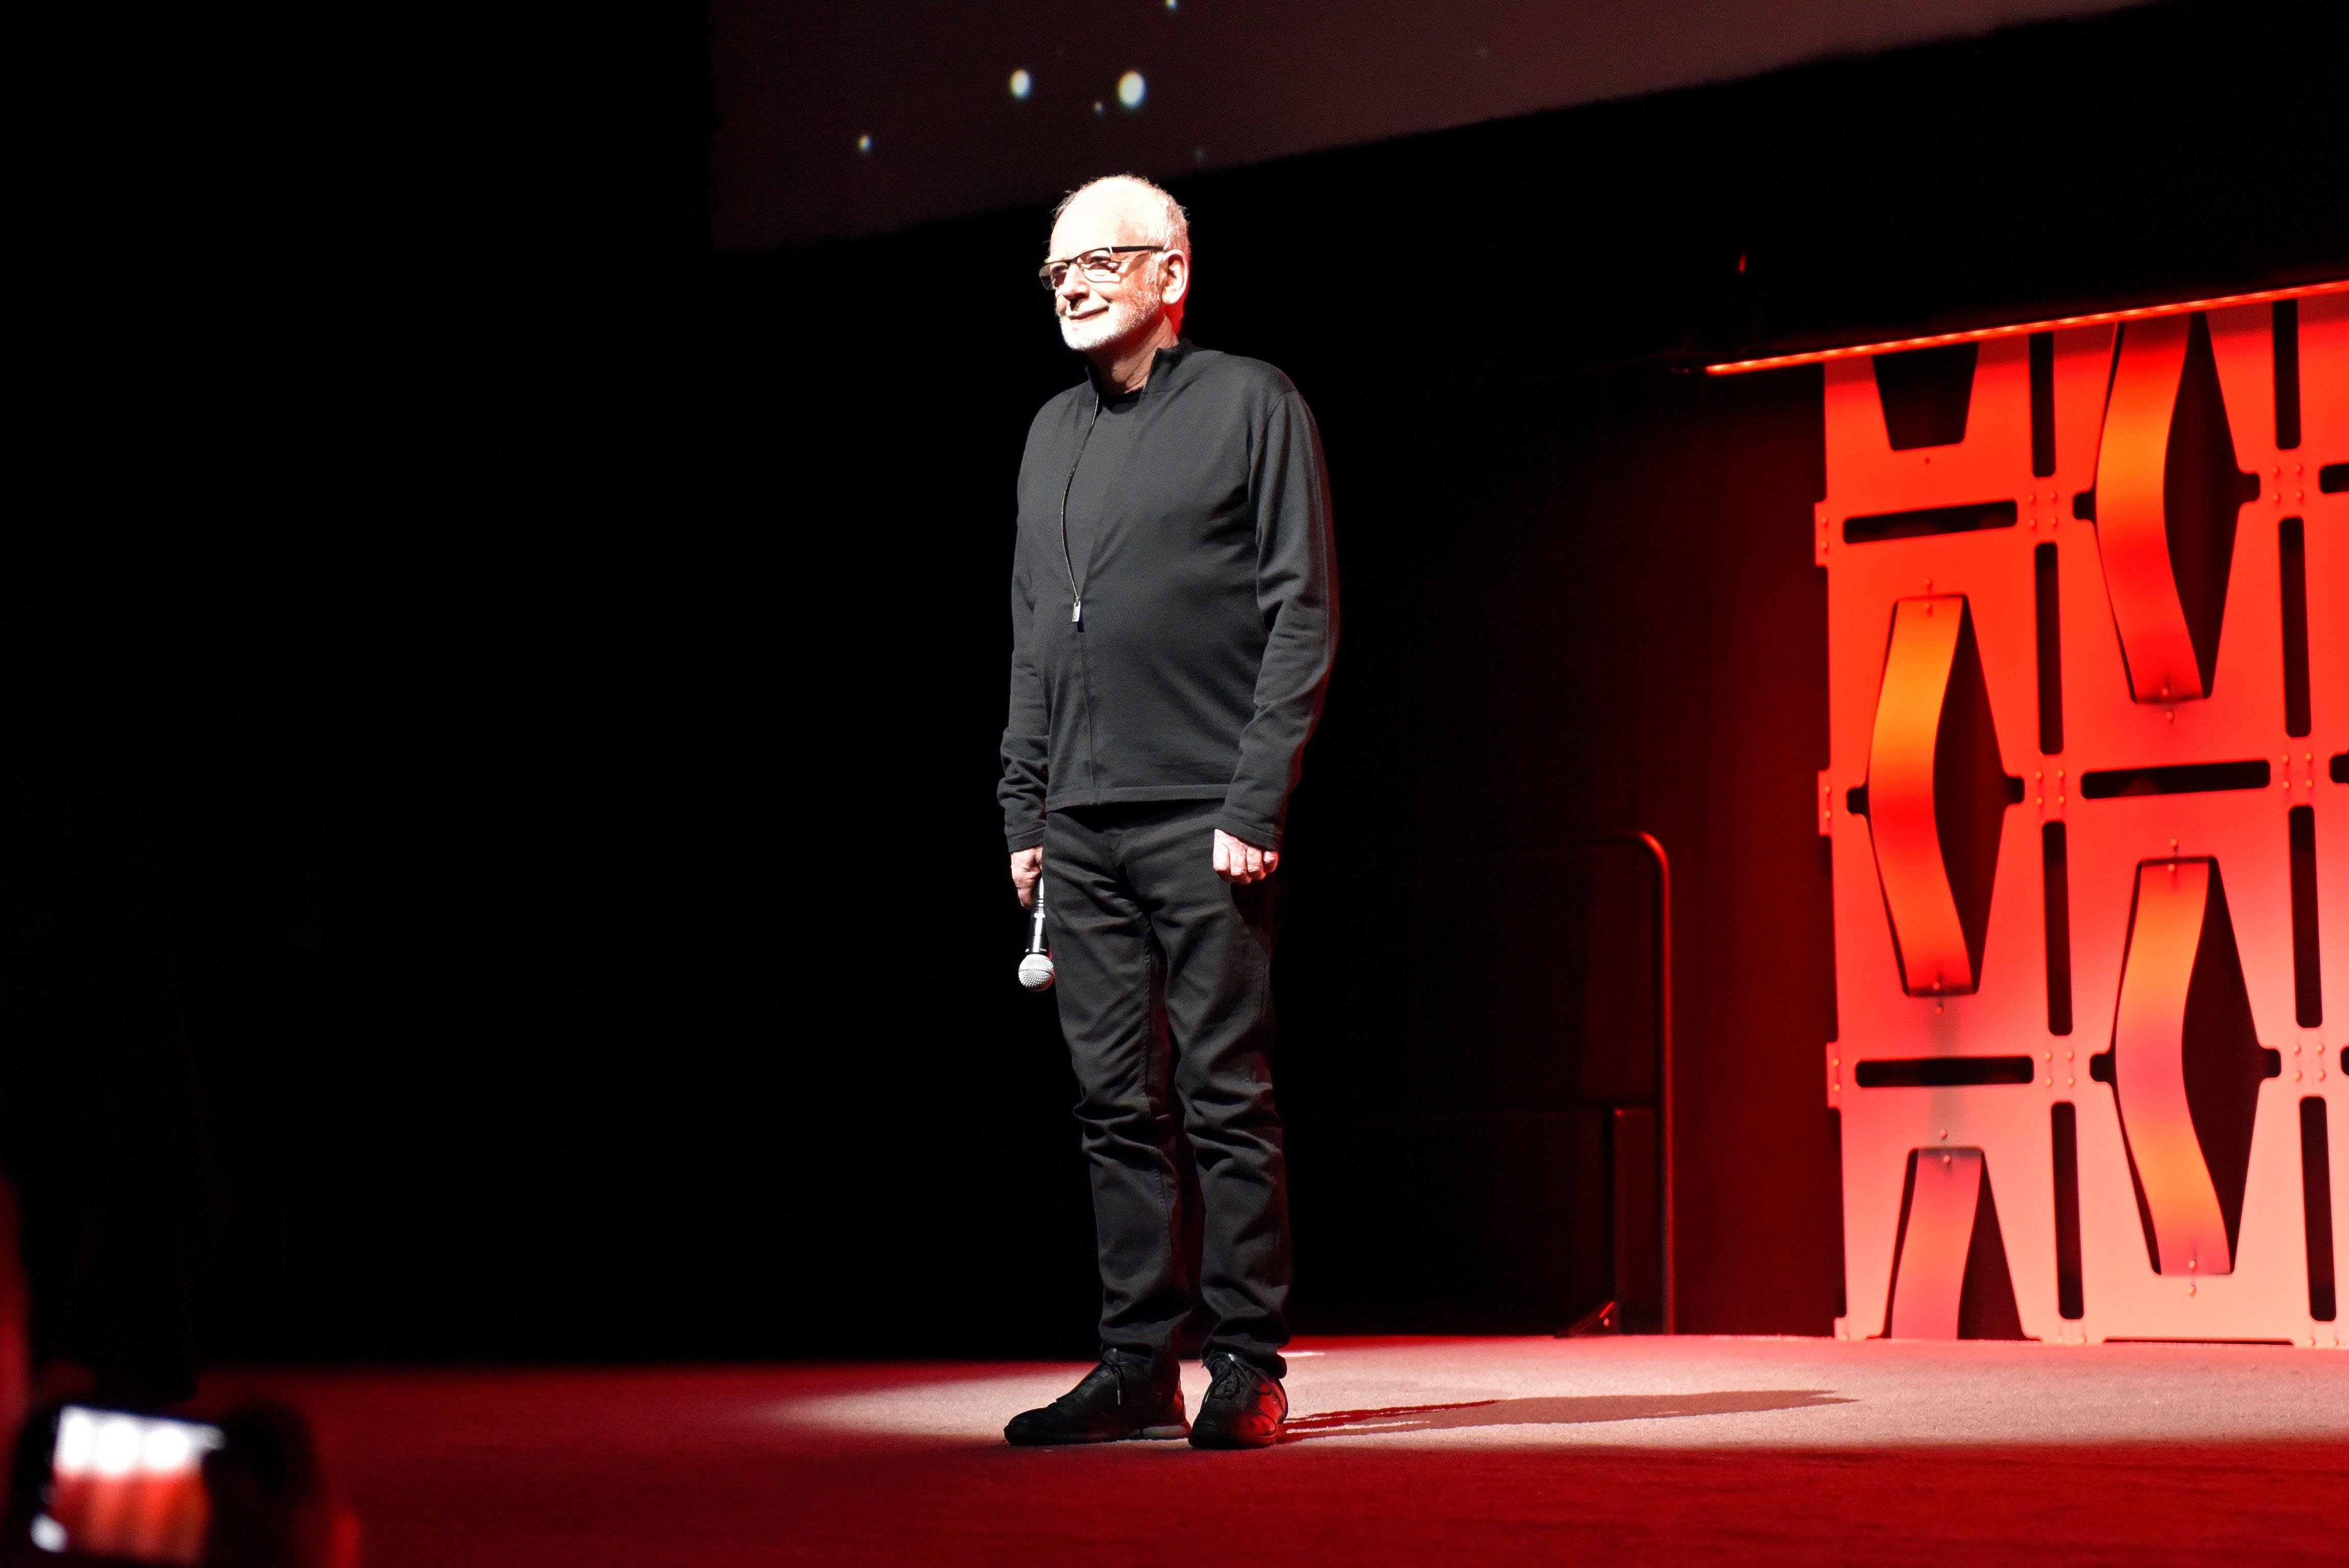 """Ian McDiarmid participates during the """"Star Wars: The Rise Of Skywalker"""" panel on day 1 of the Star Wars Celebration at Wintrust Arena on Friday, April 12, 2019, in Chicago. (Photo by Rob Grabowski/Invision/AP)"""